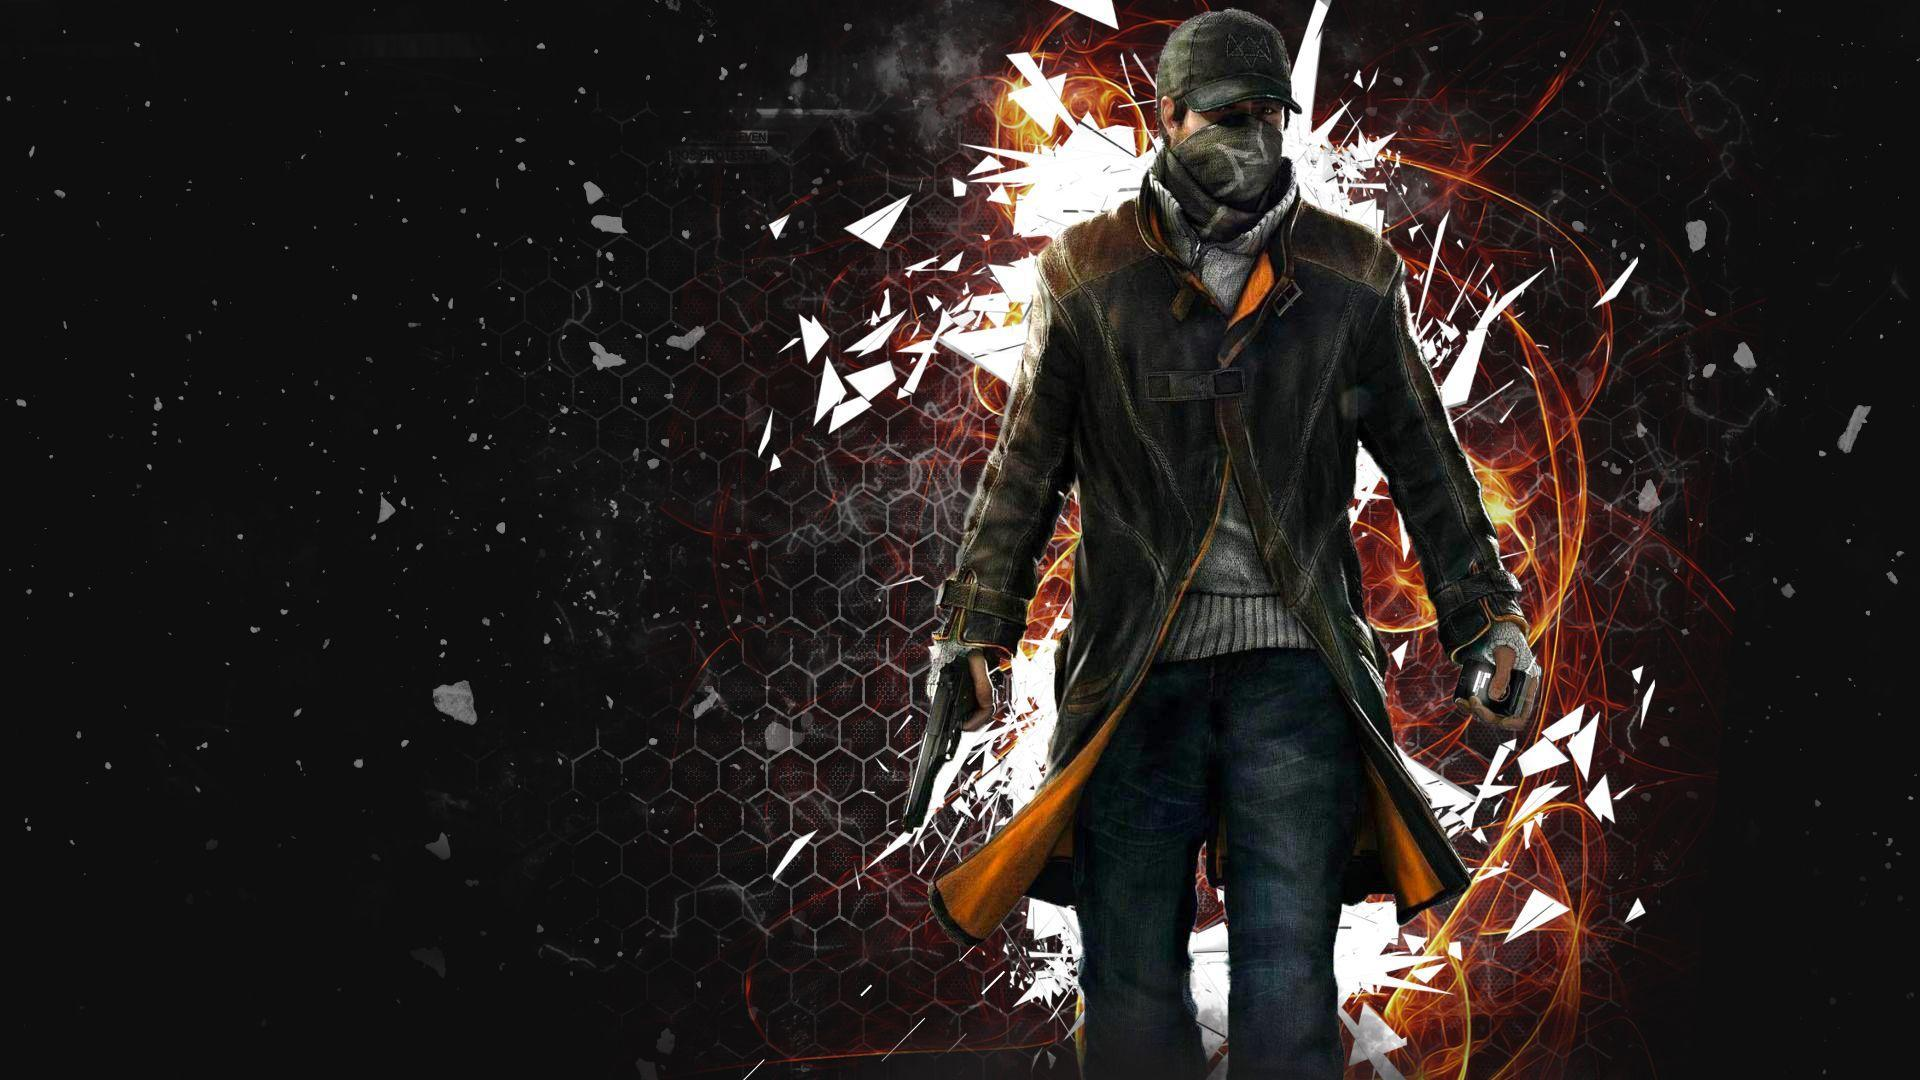 Watch dogs wallpapers wallpaper cave watch dogs wallpaper 1080p wallpapersafari voltagebd Images